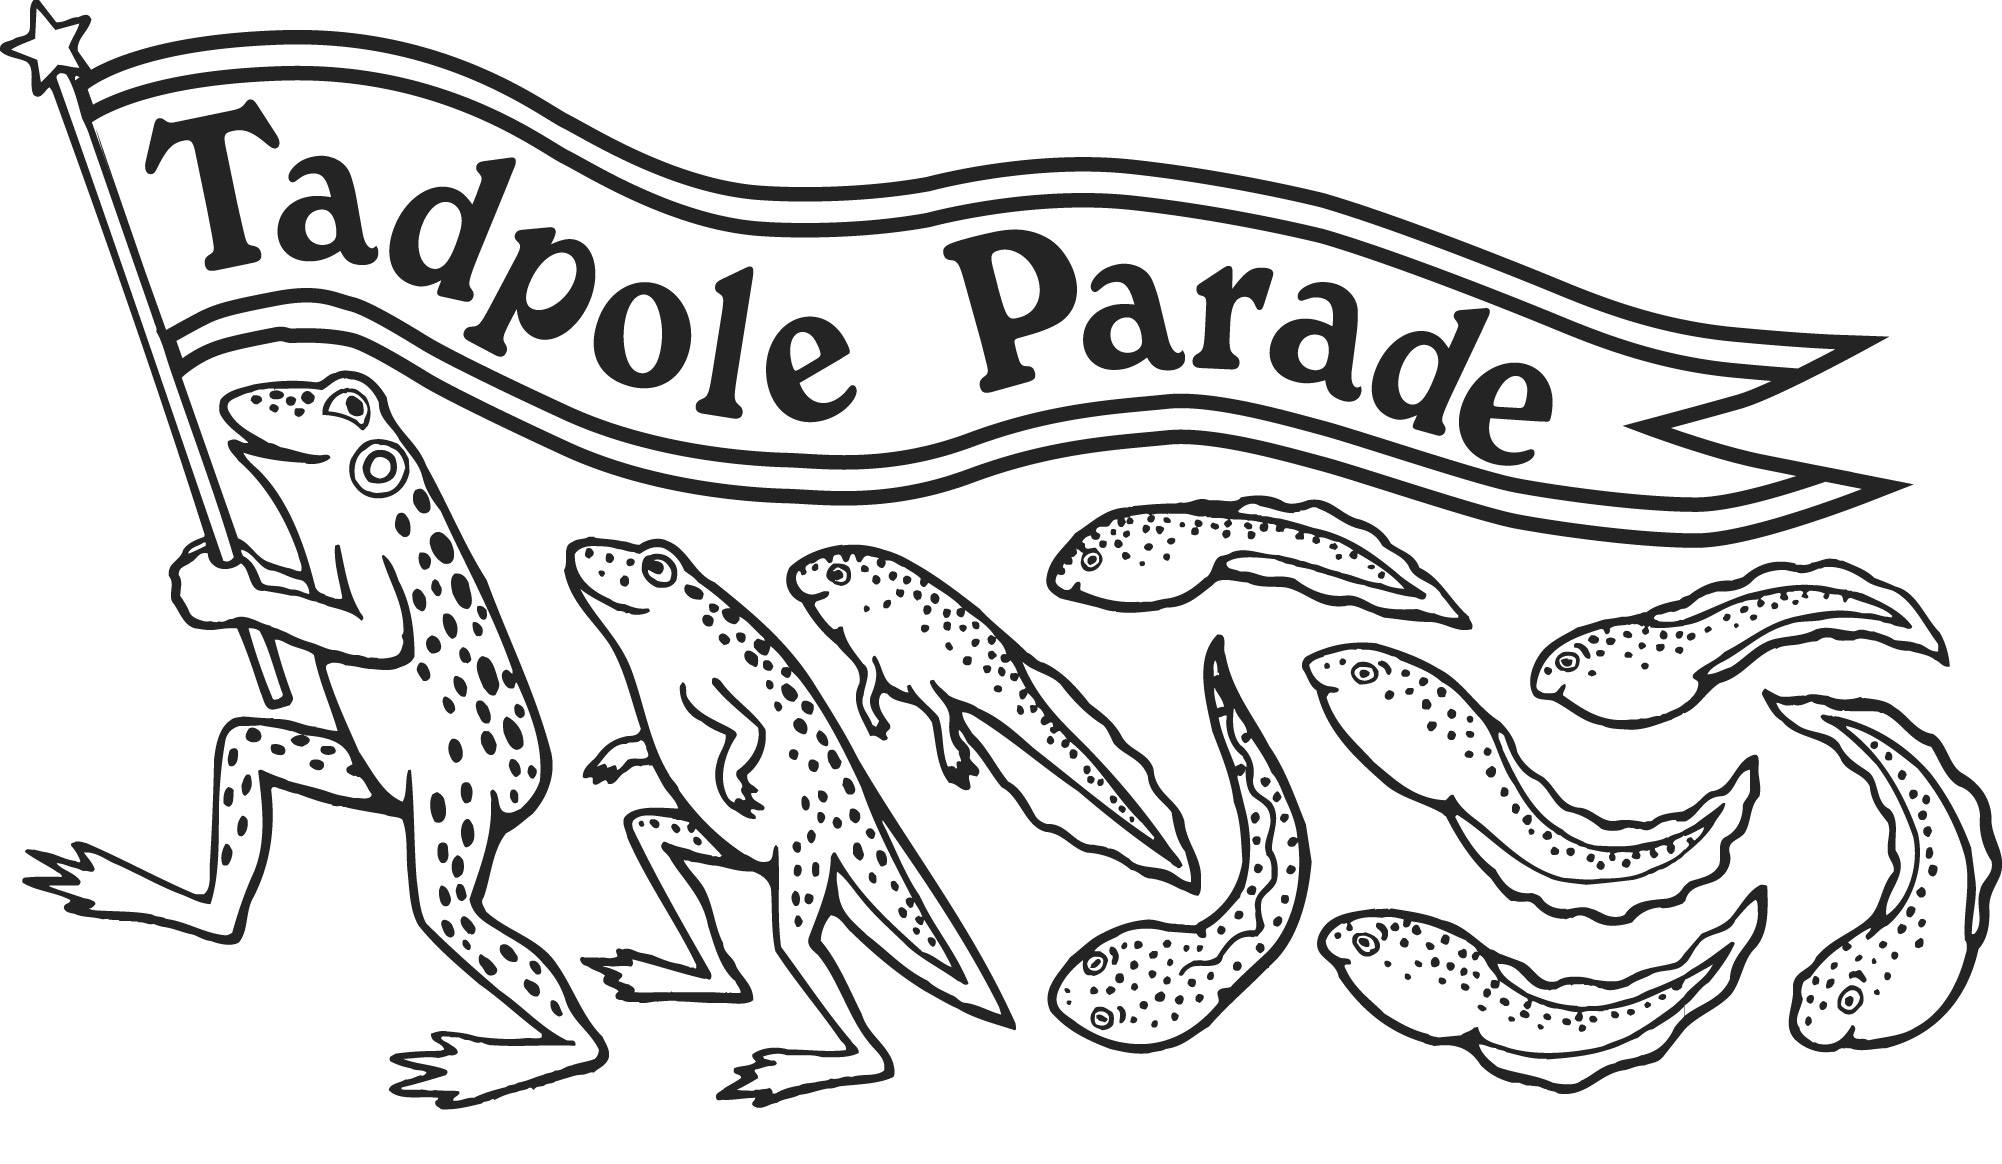 Will Hale and the Tadpole Parade